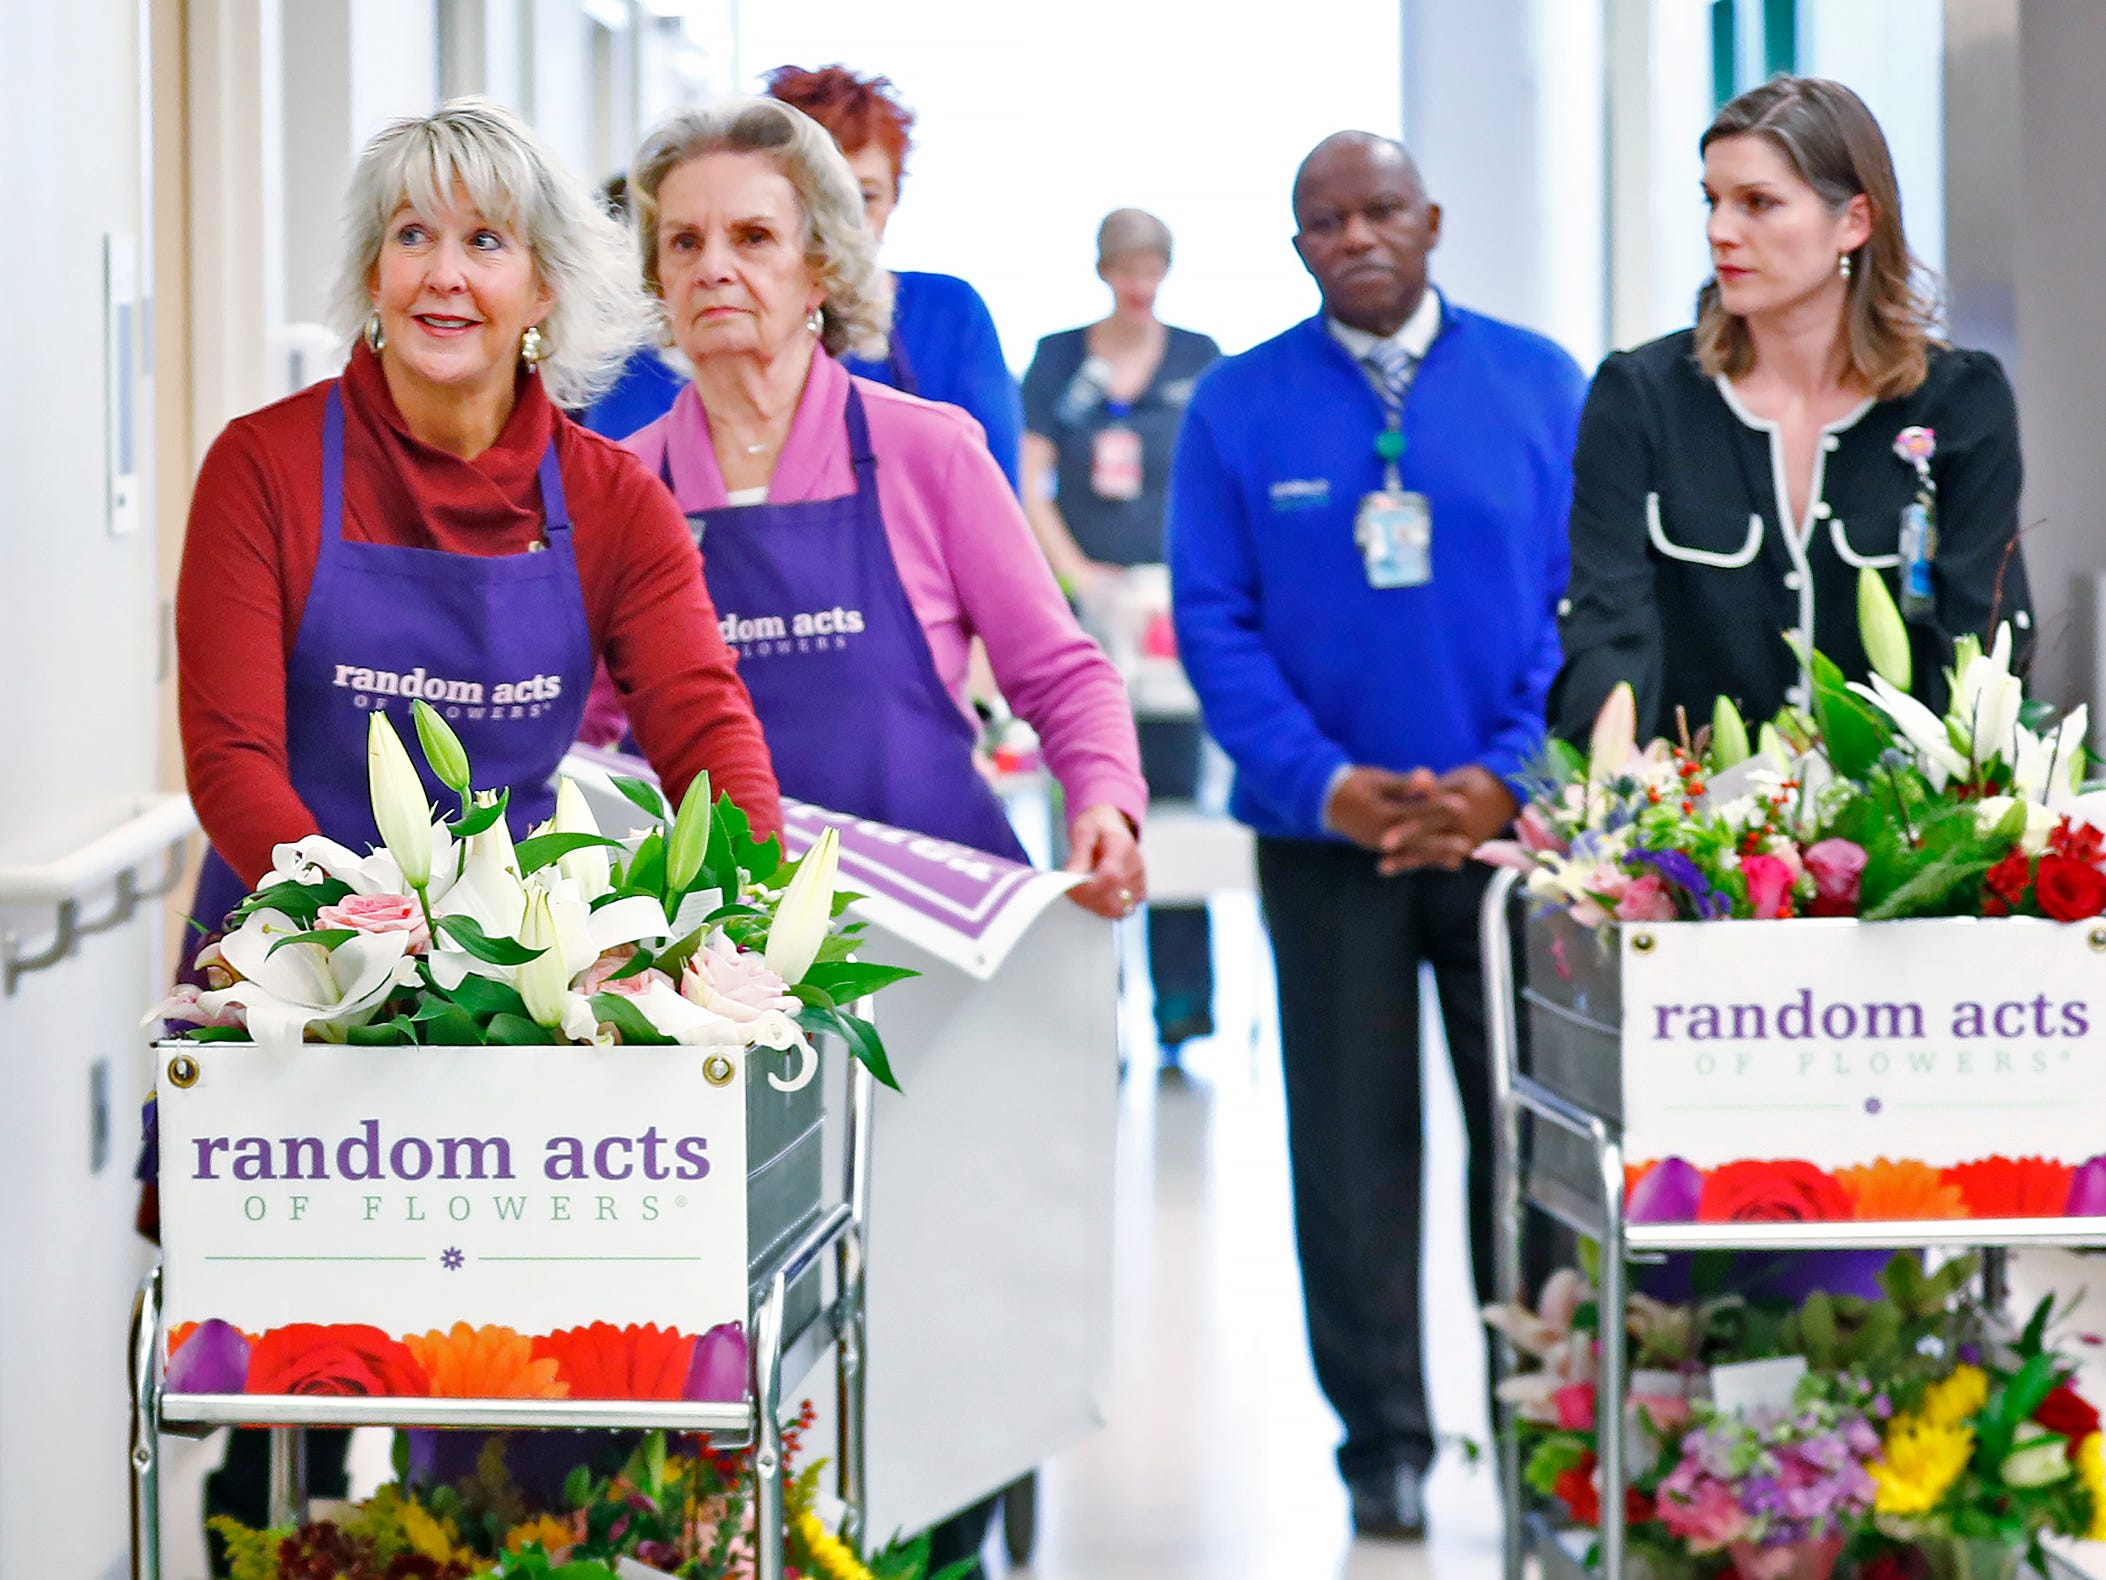 Claire Alexander, left, Joan Perry, center, with Random Acts of Flowers, and Natalie George Dykstra, with Eskenazi's Office of Patient Experience, right, and others deliver flowers to patients, at Sidney & Lois Eskenazi Hospital, Thursday, Nov. 29, 2018.  The newest branch of the national floral nonprofit has been delivering the flowers to patients to offer hope, encouragement and smiles, for about two years.  This day, Random Acts of Flowers delivered their 50,000th bouquet.